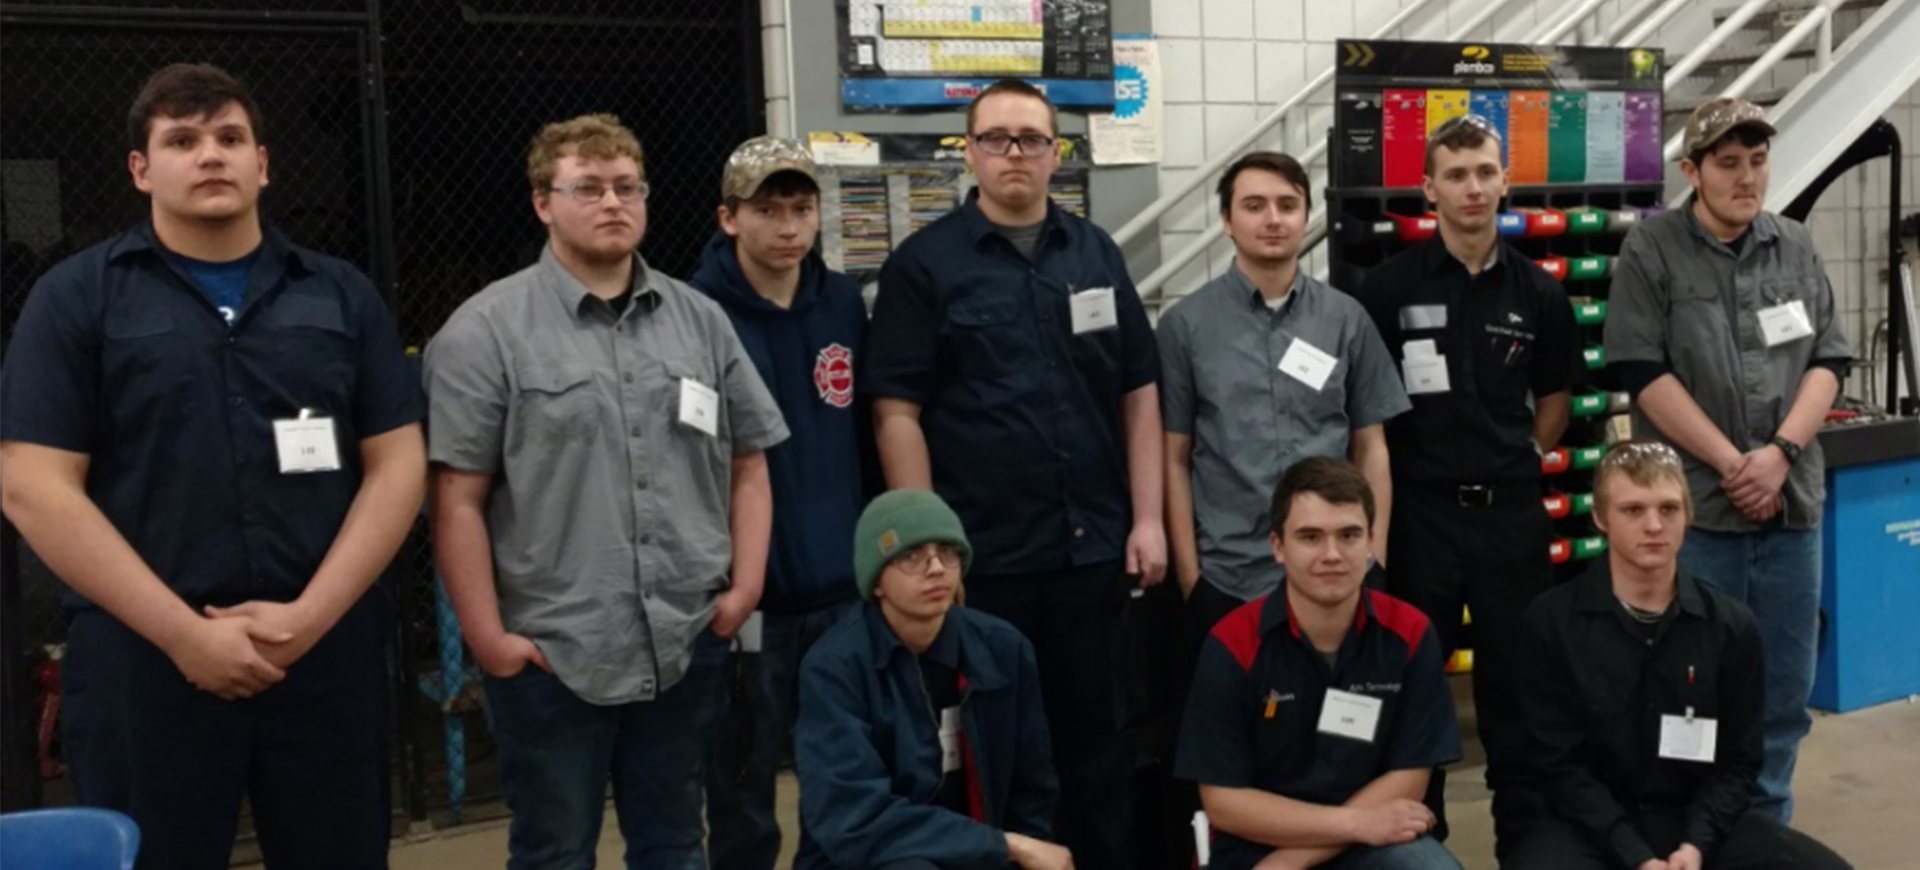 Ten students competed in the SkillsUSA Ohio Regional Automotive Service Technology competition hosted by Washington State Community College. Participants were from Knox County, Swiss Hills, Tri-County, Coshocton County, Buckeye, Washington County, and Mid-East career centers; Jefferson County Joint Vocational School; and Meigs, Morgan, and C-TEC high schools.